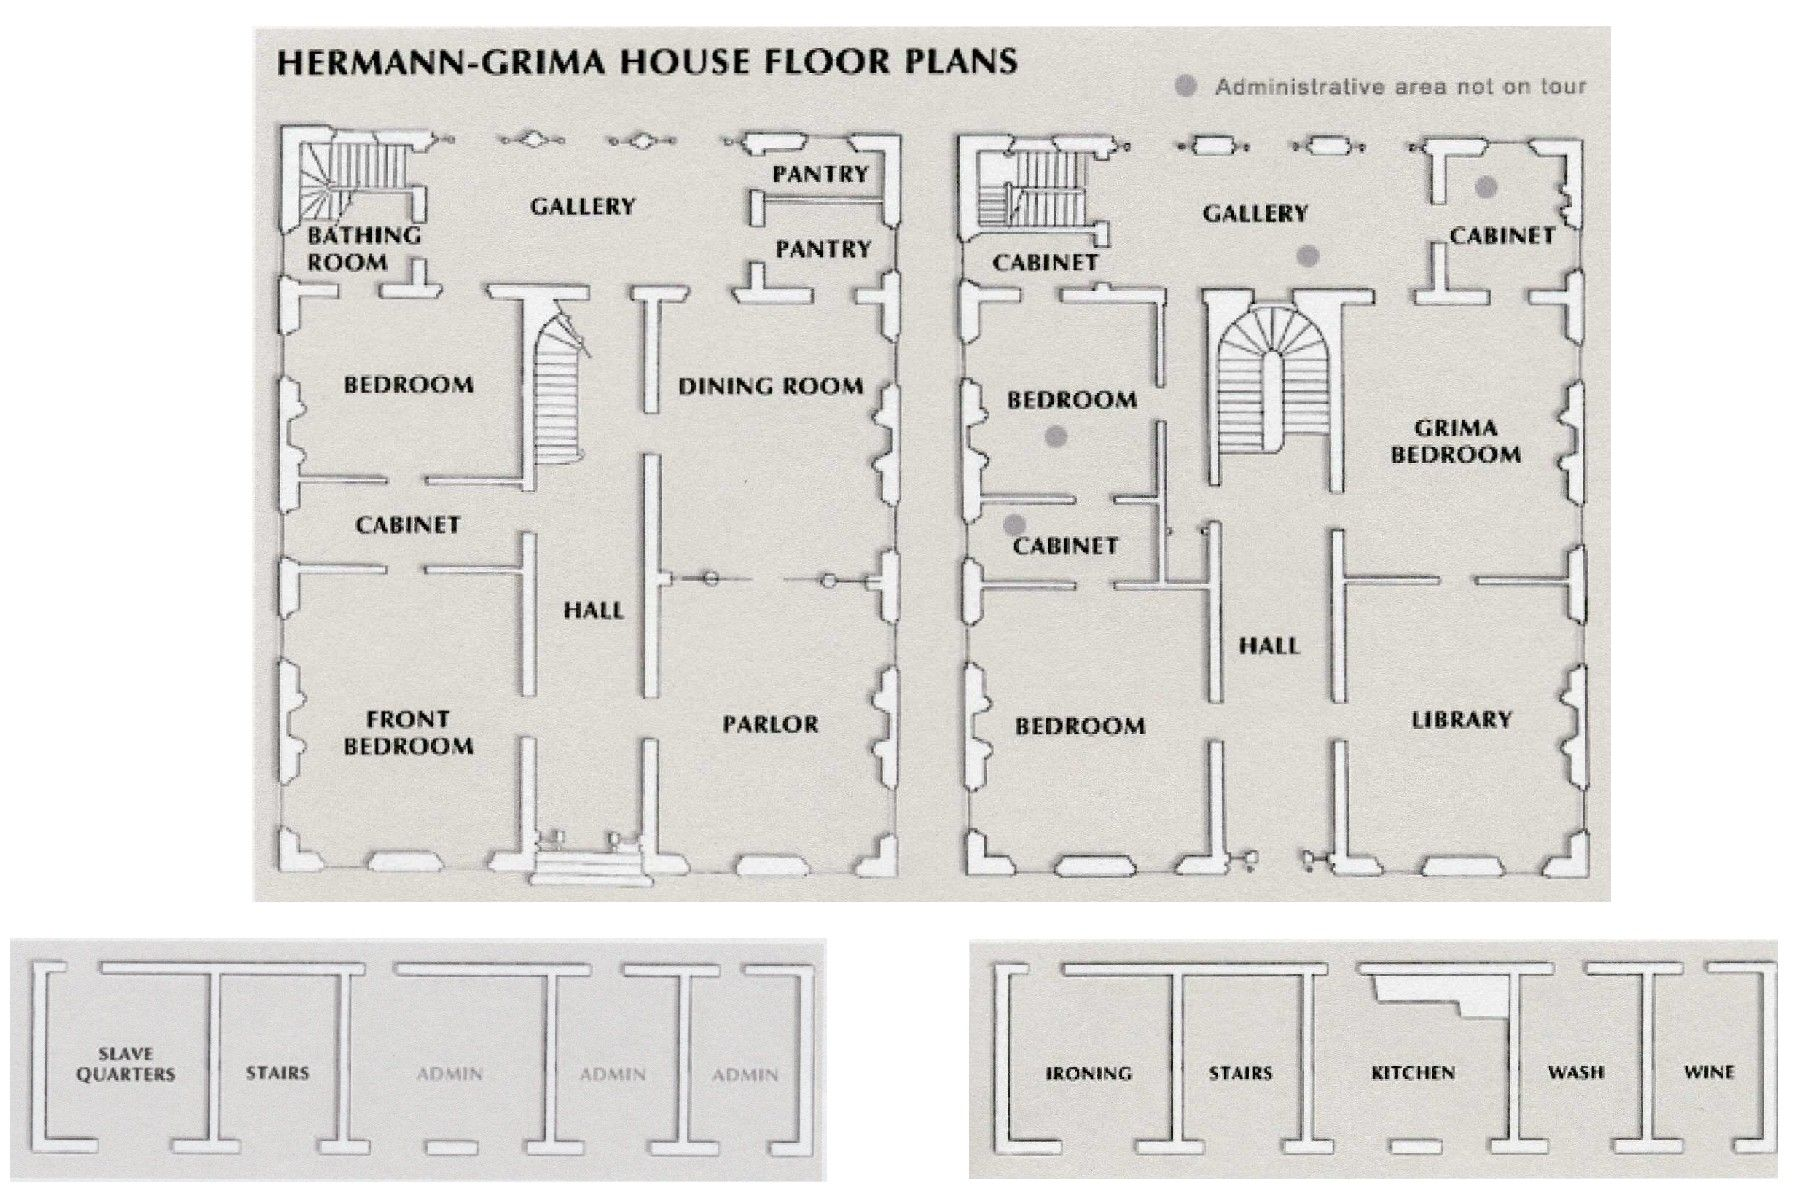 The Floor Plans To The Hermann-Grima House In The French